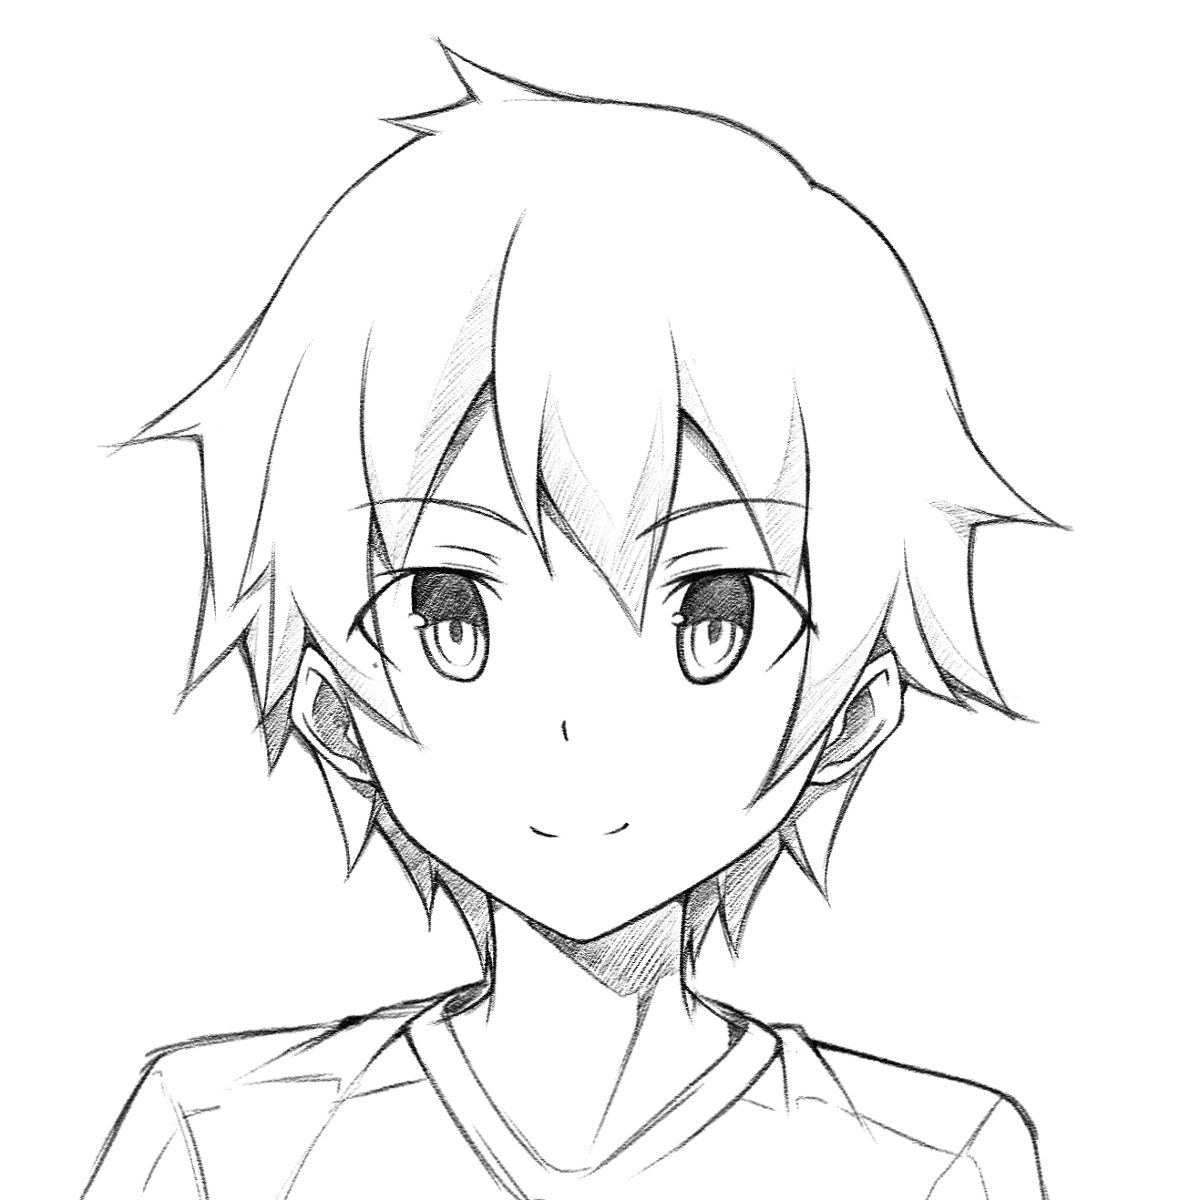 Pin By Sketch Academy On 30 Days Challenge Anime Face Drawing Anime Boy Sketch Anime Boy Hair